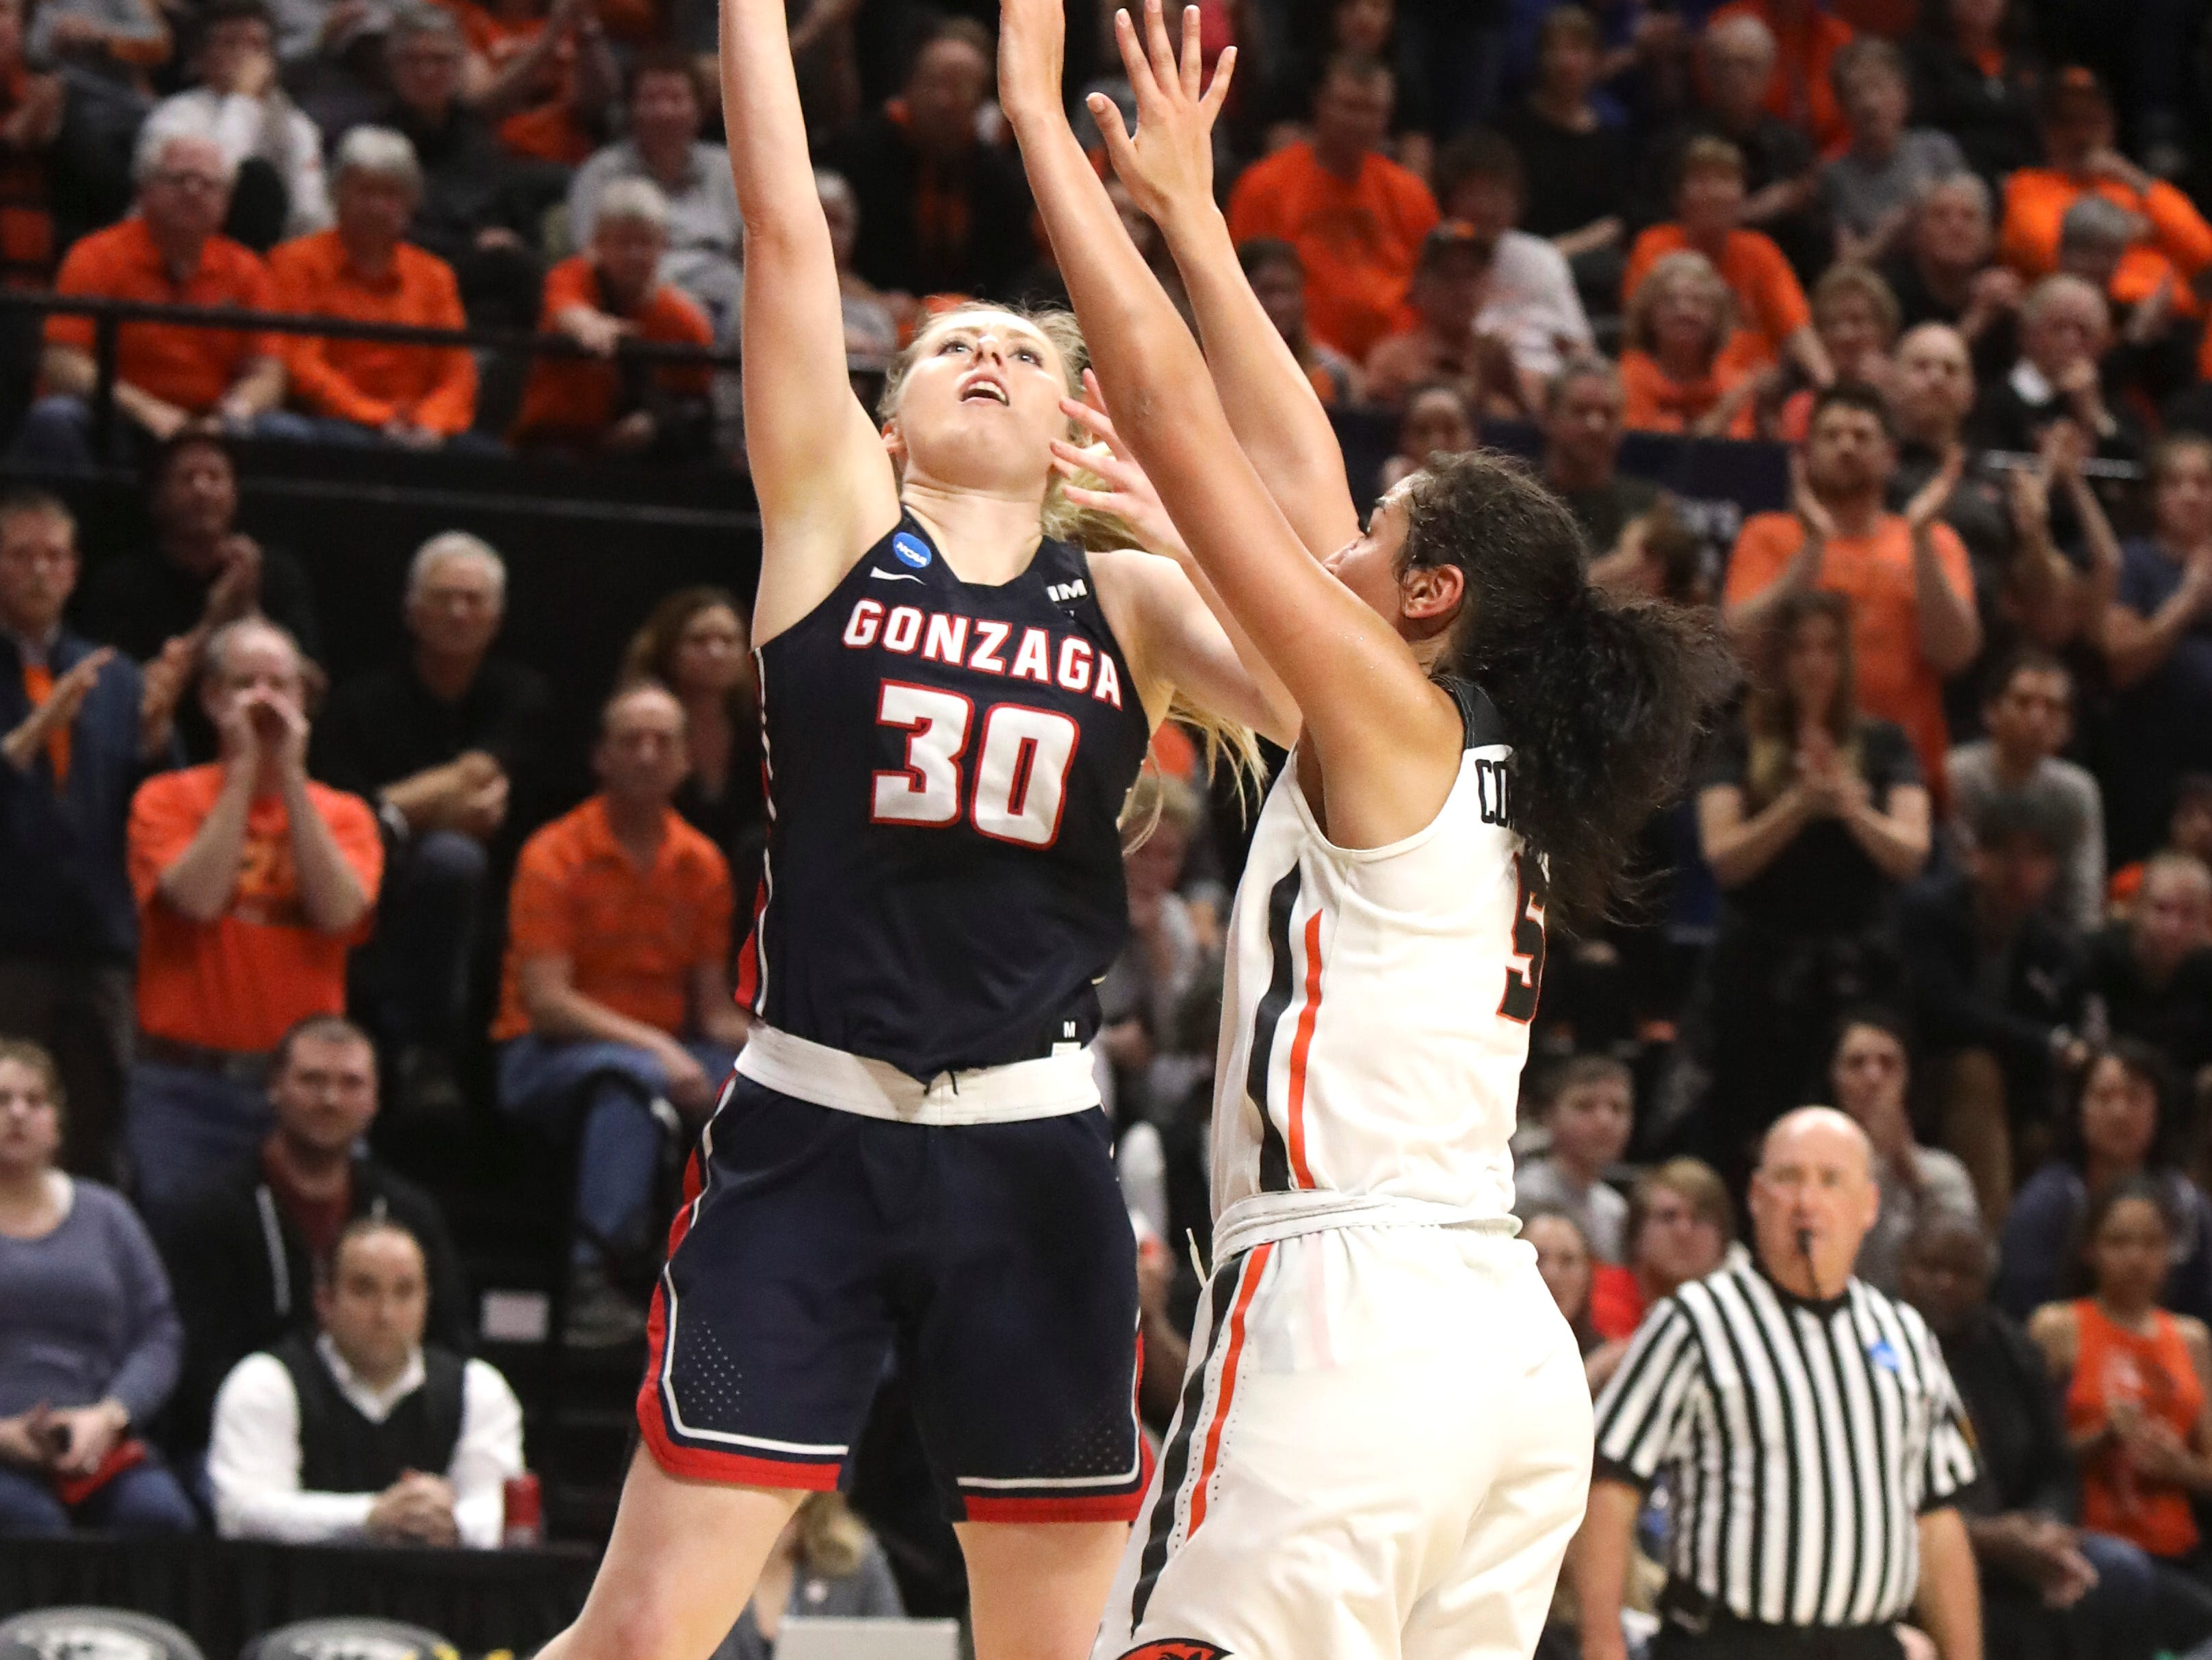 Oregon State's Taya Corosdale (5) tries to block a shot by Gonzaga's Chandler Smith (30) during the second half of a second-round game of the NCAA women's college basketball tournament in Corvallis, Ore., Monday, March 25, 2019. Oregon State won 76-70 (AP Photo/Amanda Loman)